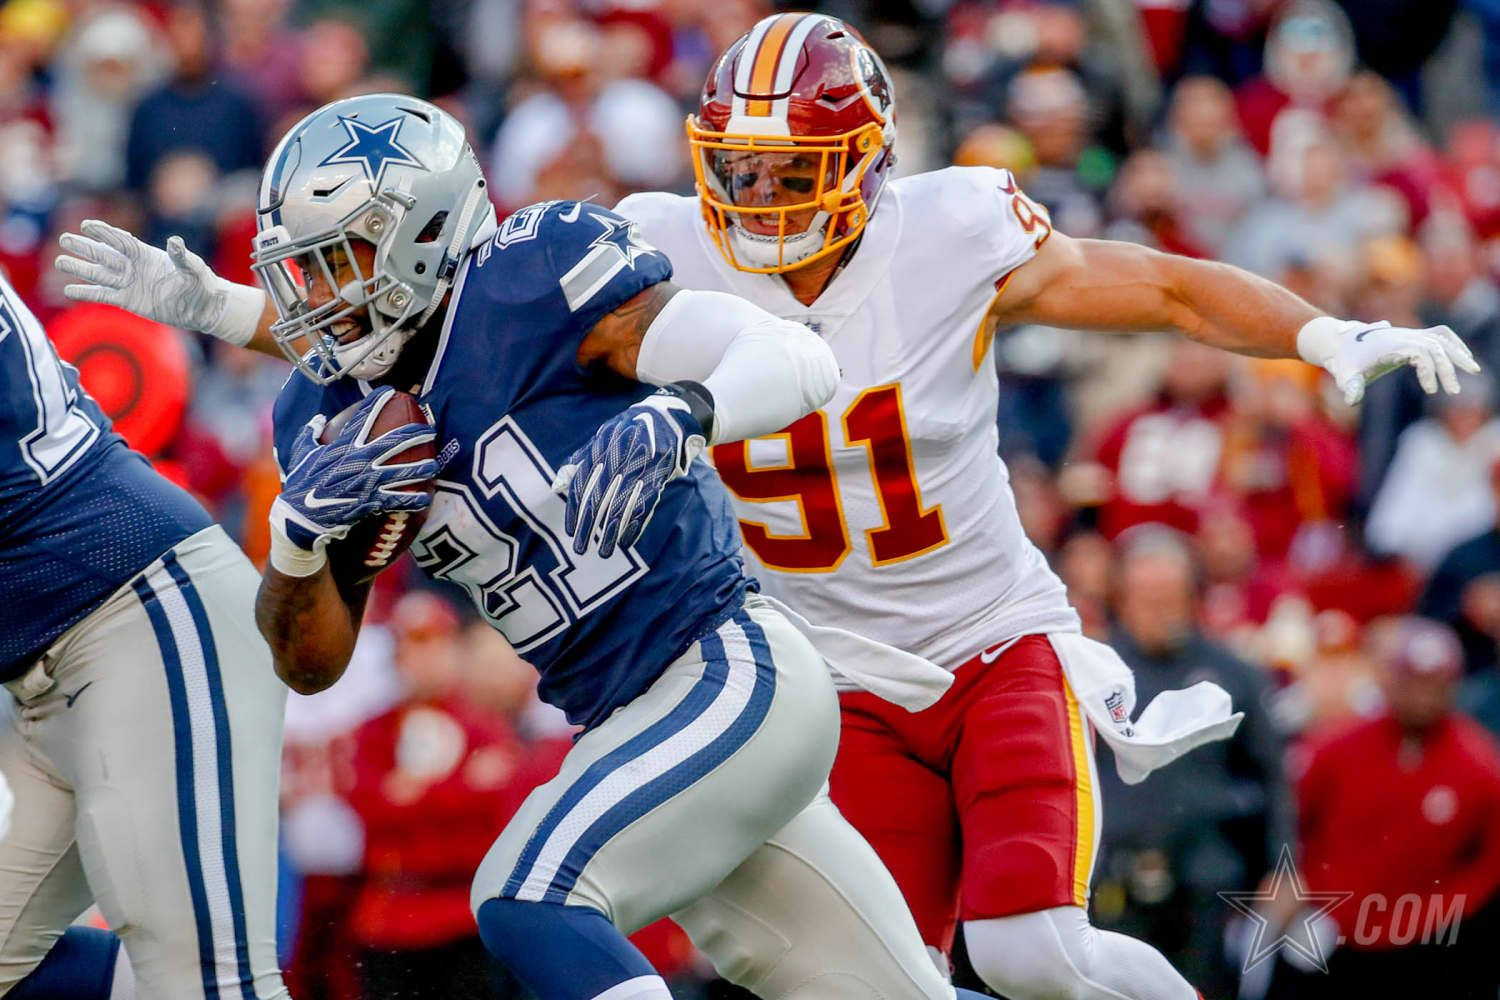 Week 7 October 21 2018 Dallas Cowboys Vs Washington Redskins In Landover Md Dallas Cowboys Cowboys Vs Washington Redskins